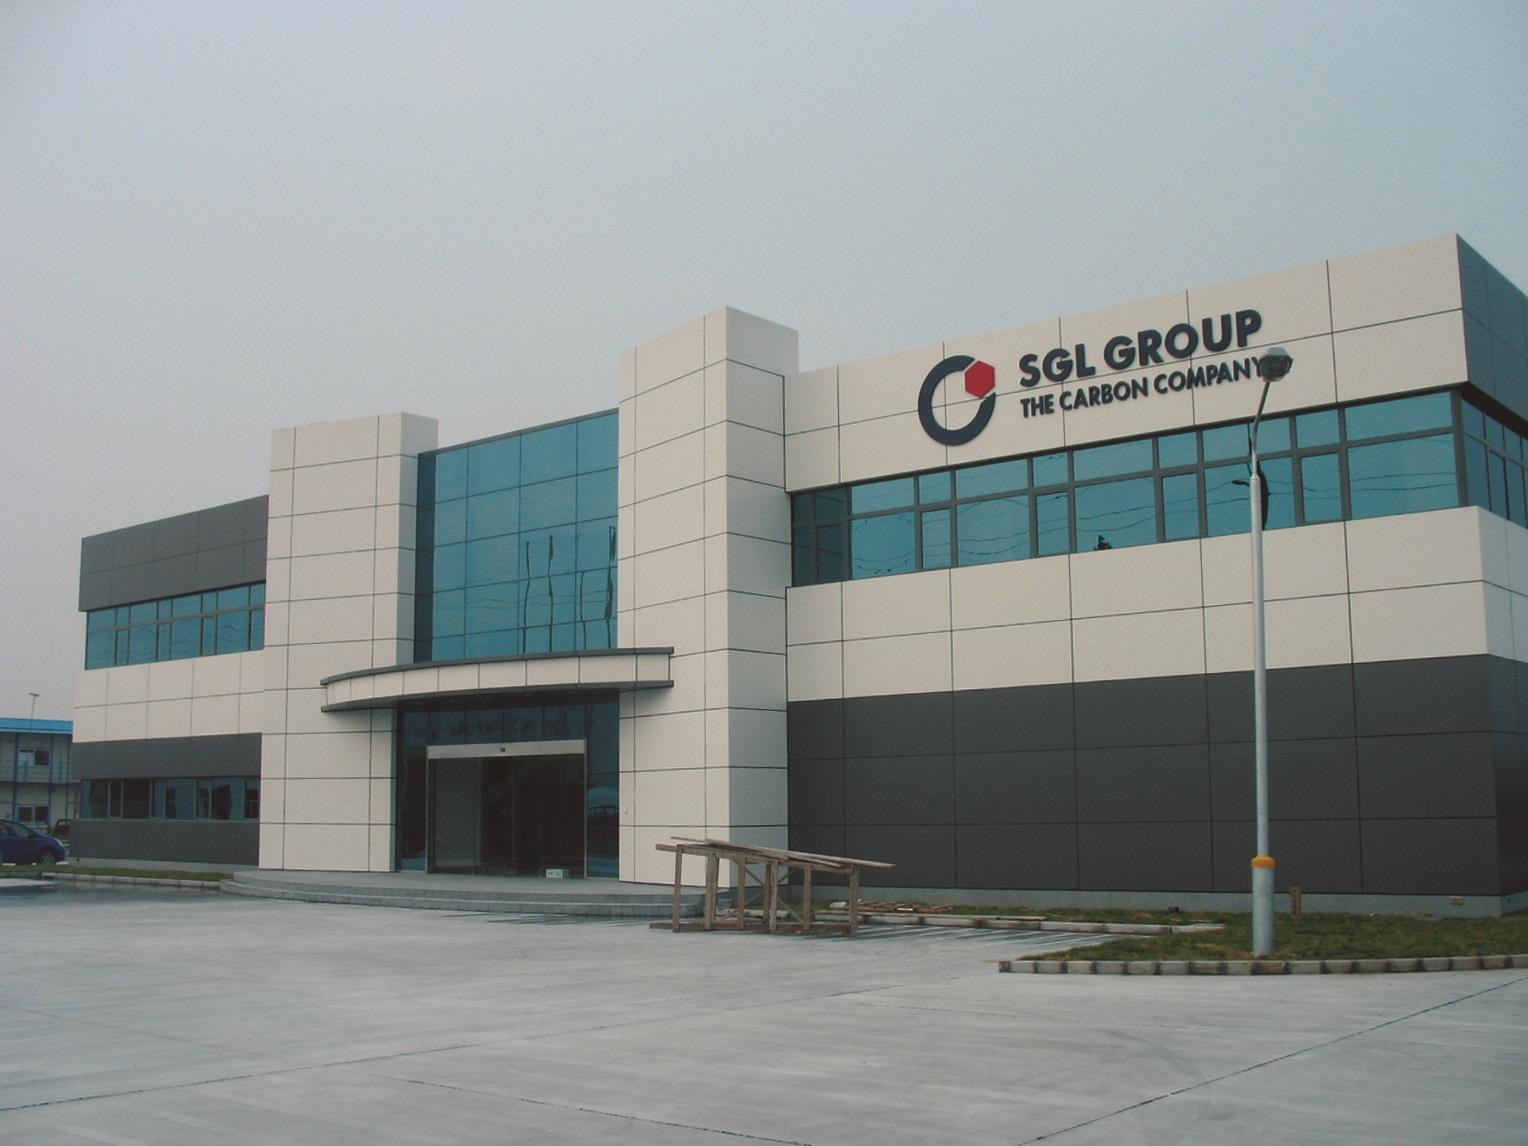 SGL Group's Shanghai site